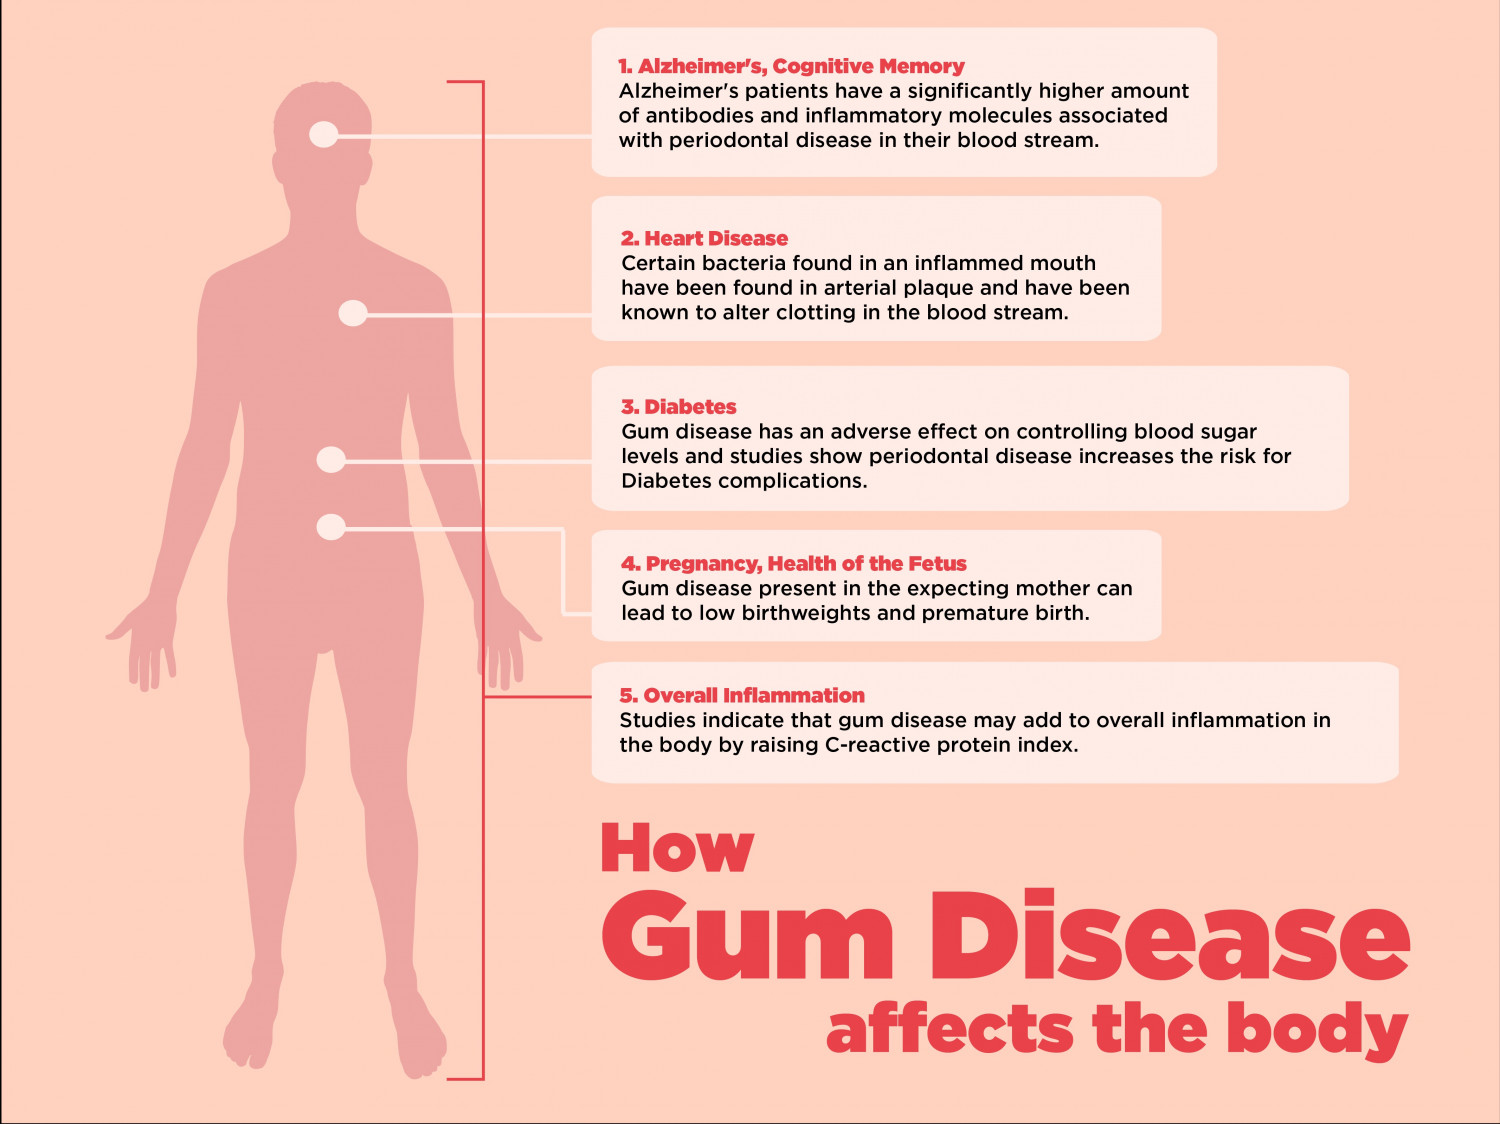 How Gum Disease Affects the Body Infographic